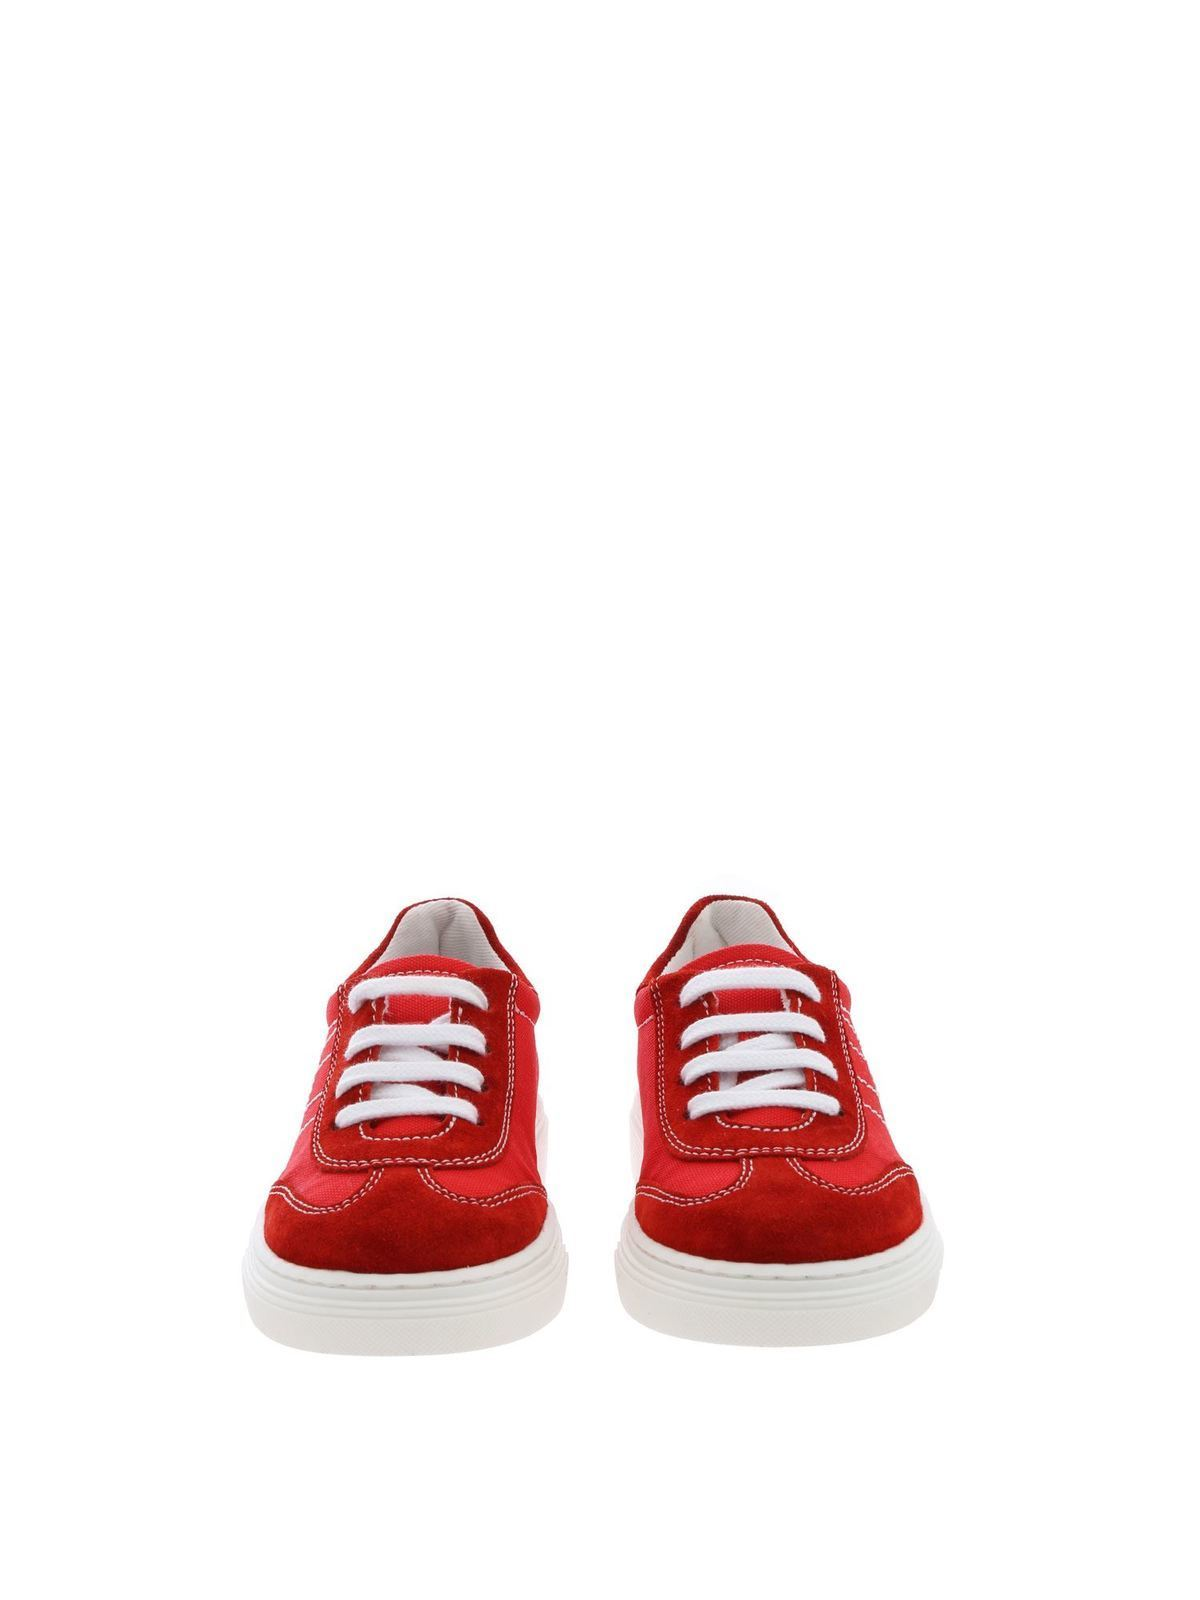 Hogan Junior - J340 sneakers in red - trainers - HXT3400BL80KNKR001